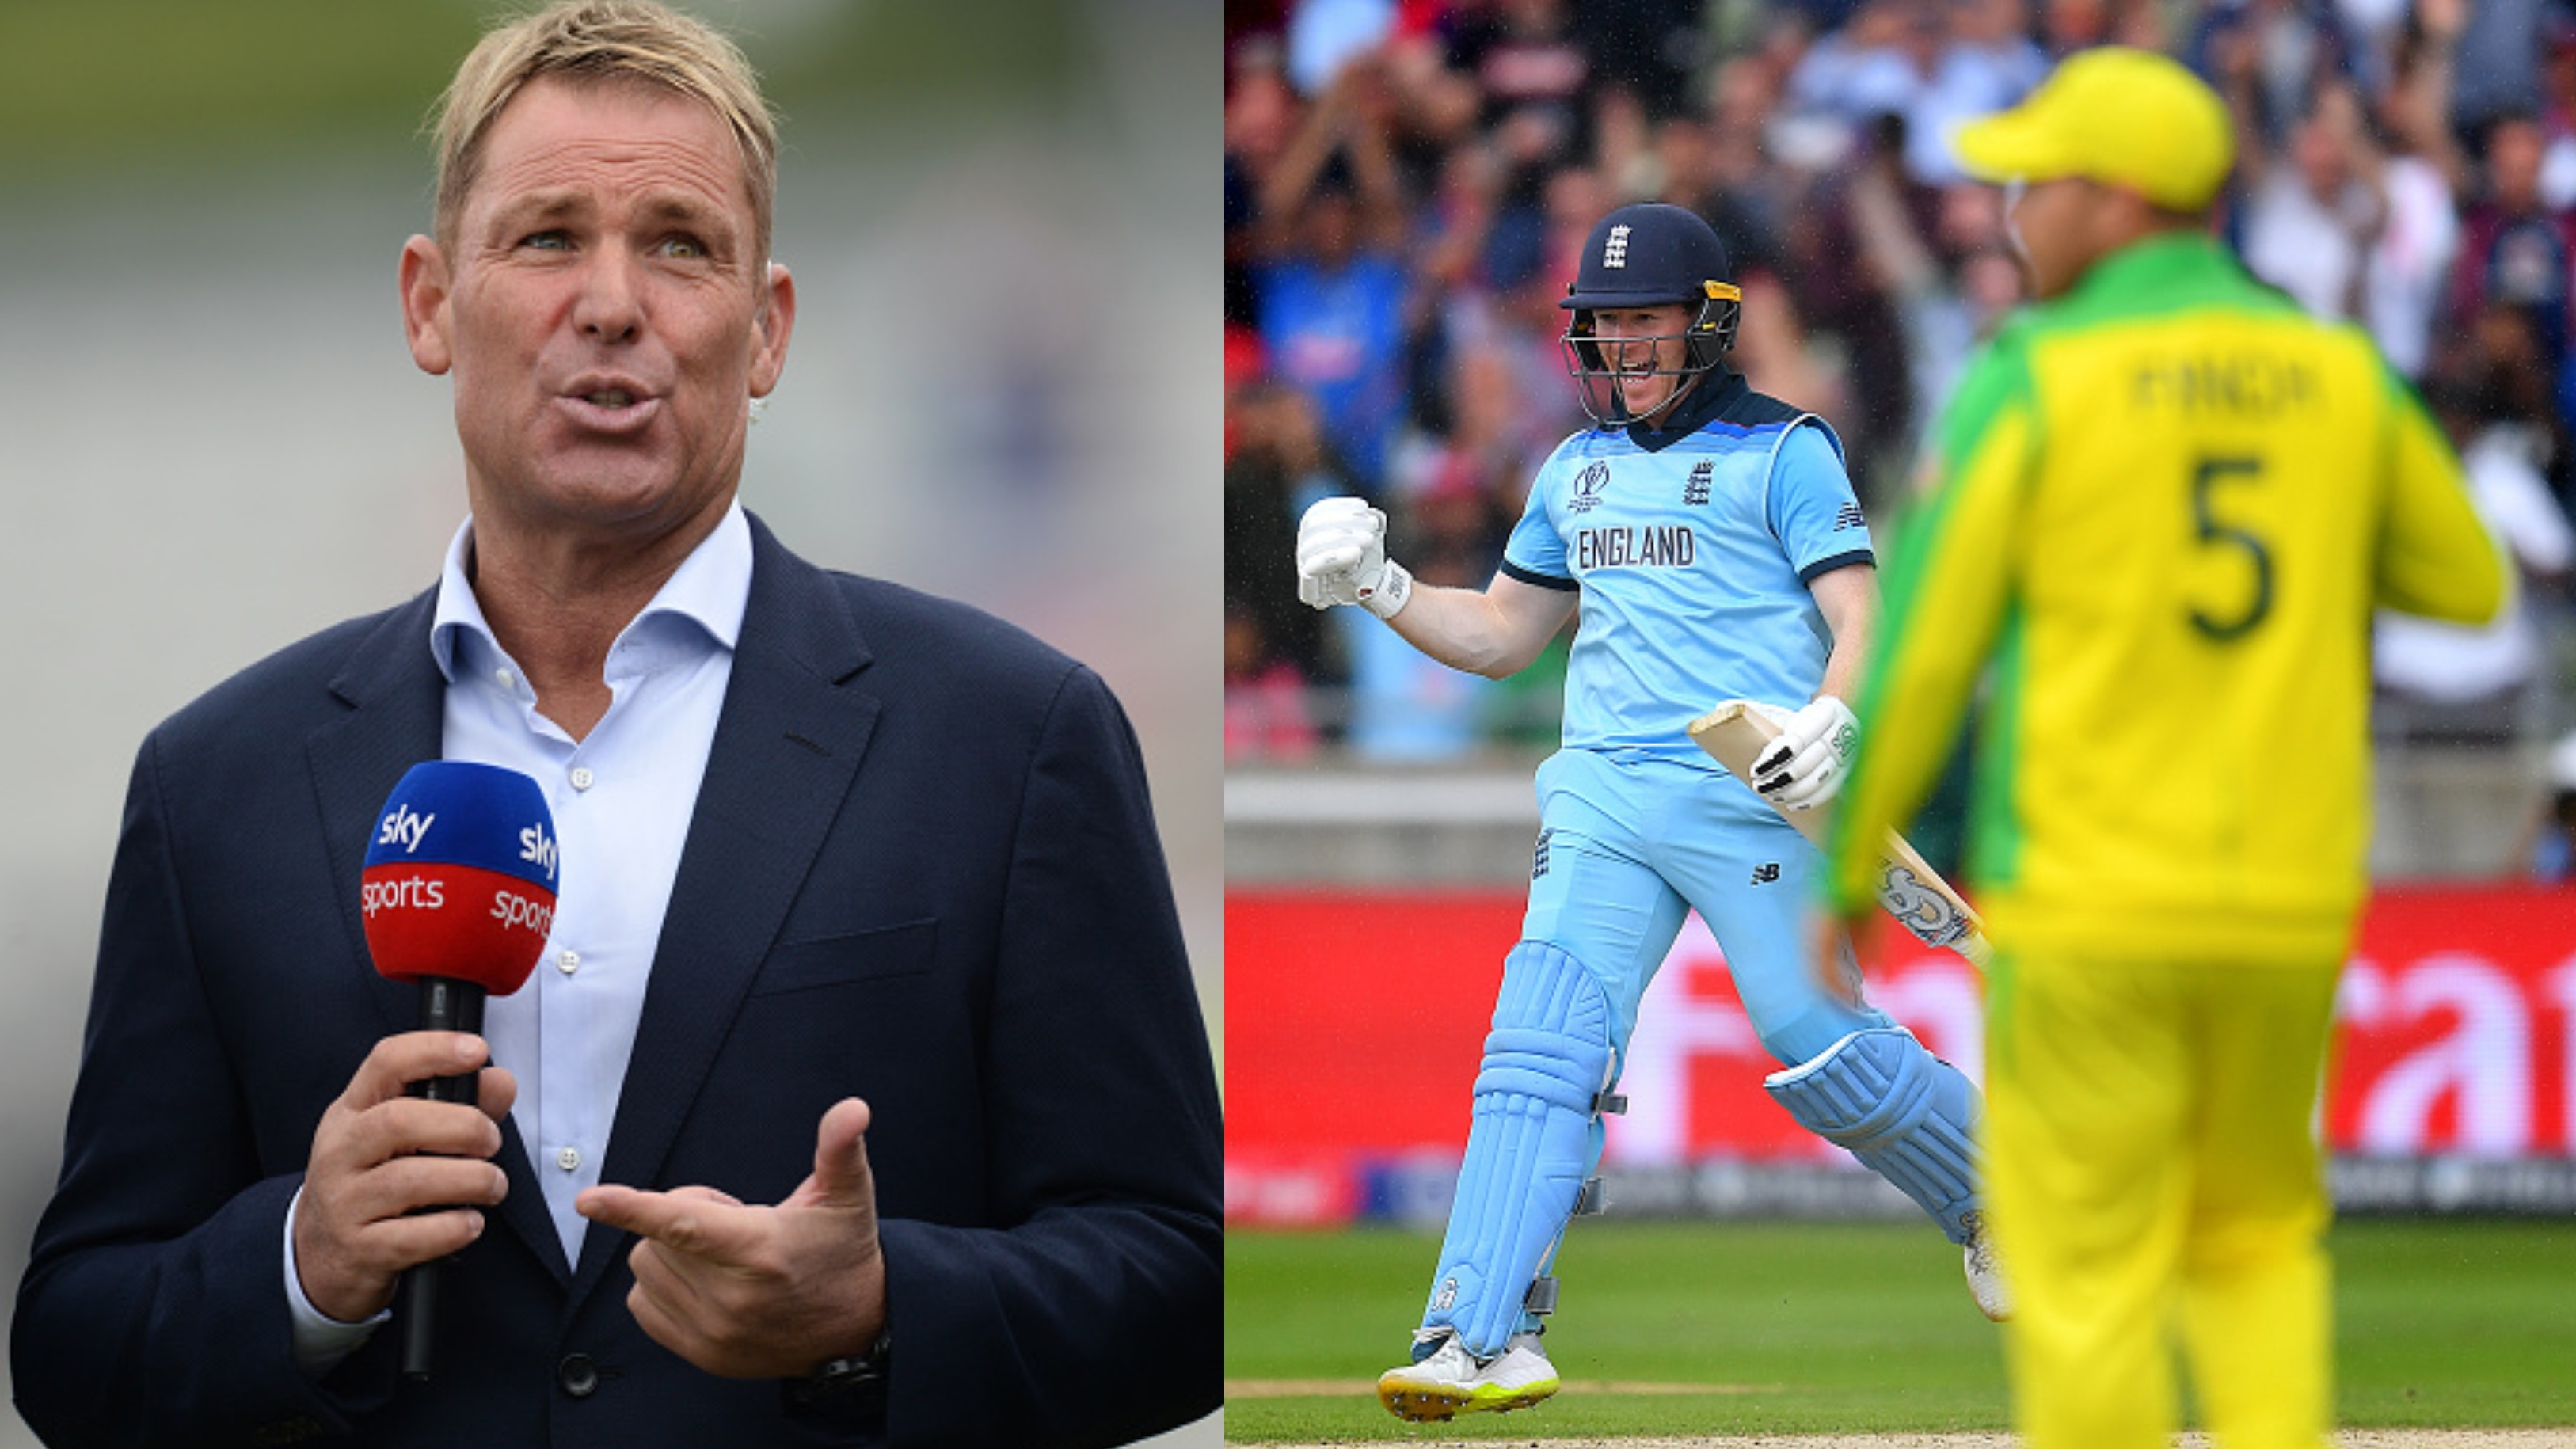 CWC 2019: Shane Warne reacts to Australia's semi-final loss to England